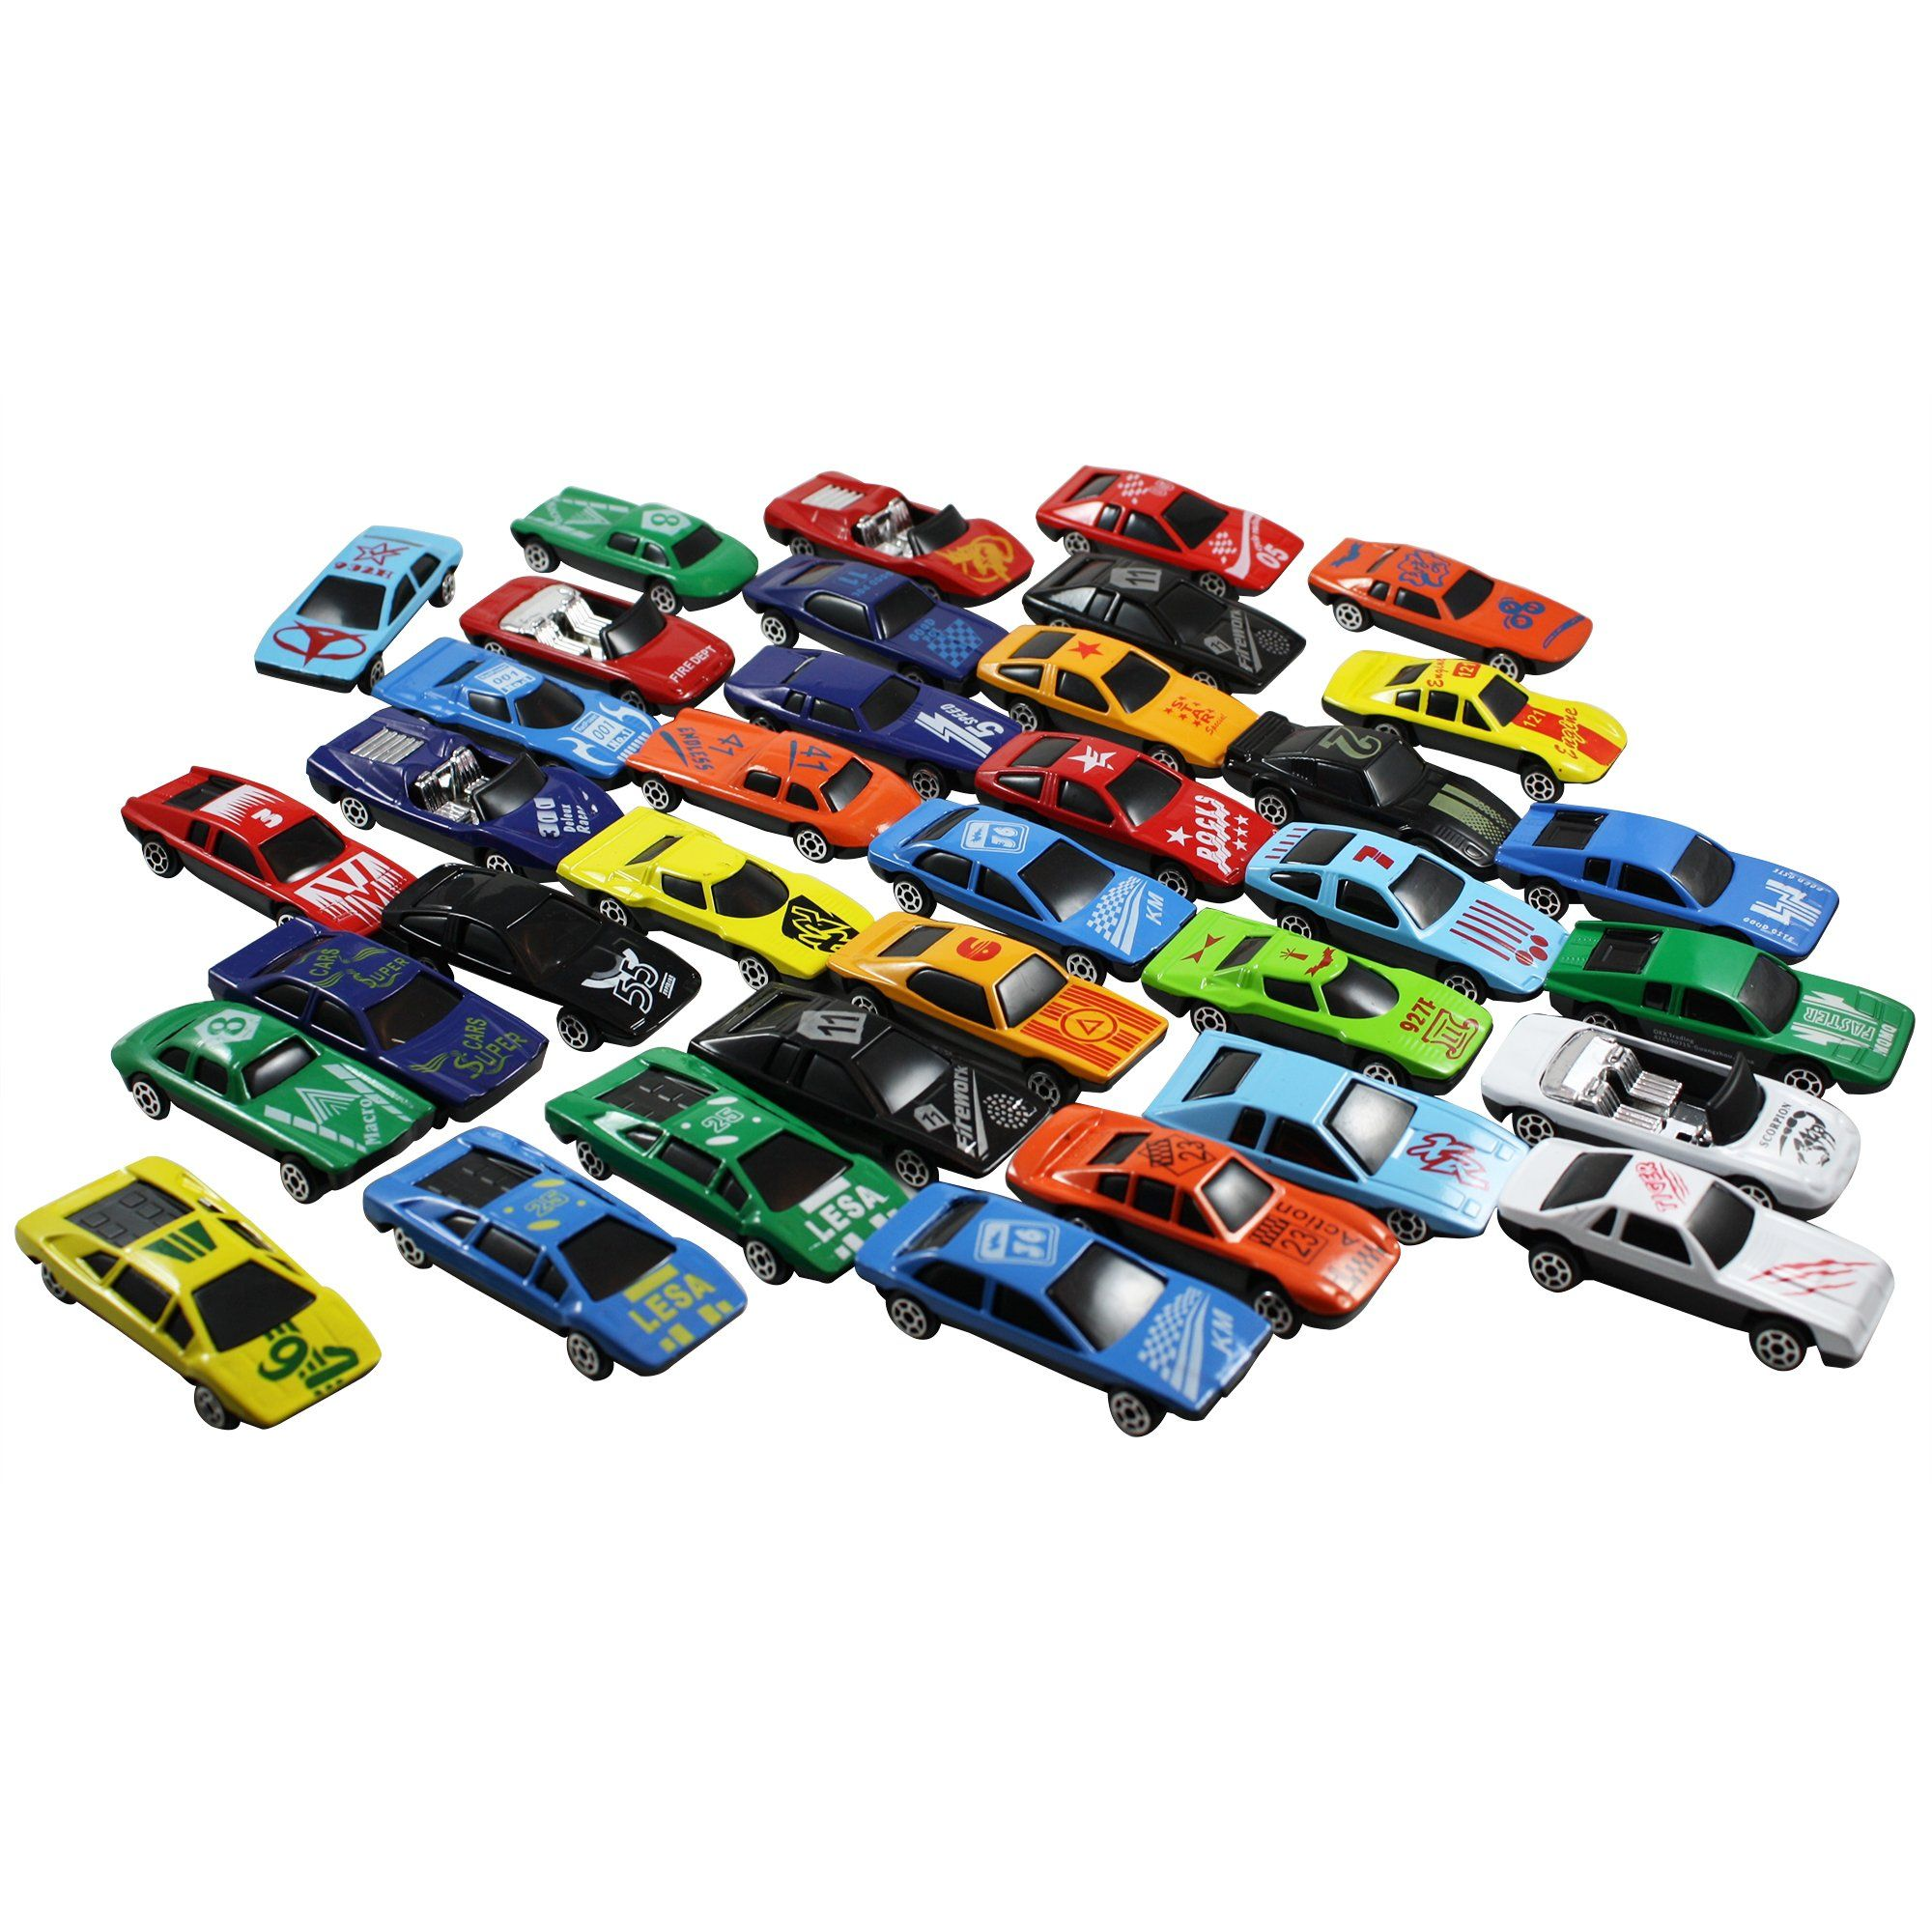 Race Car Toys Assorted For Kids Boys Or Girls Free Wheeling Die Cast Metal Plastic Toy Cars Set Of 36 Numbered Vehicles Convertibles Gr Car Set Toy Car Toys